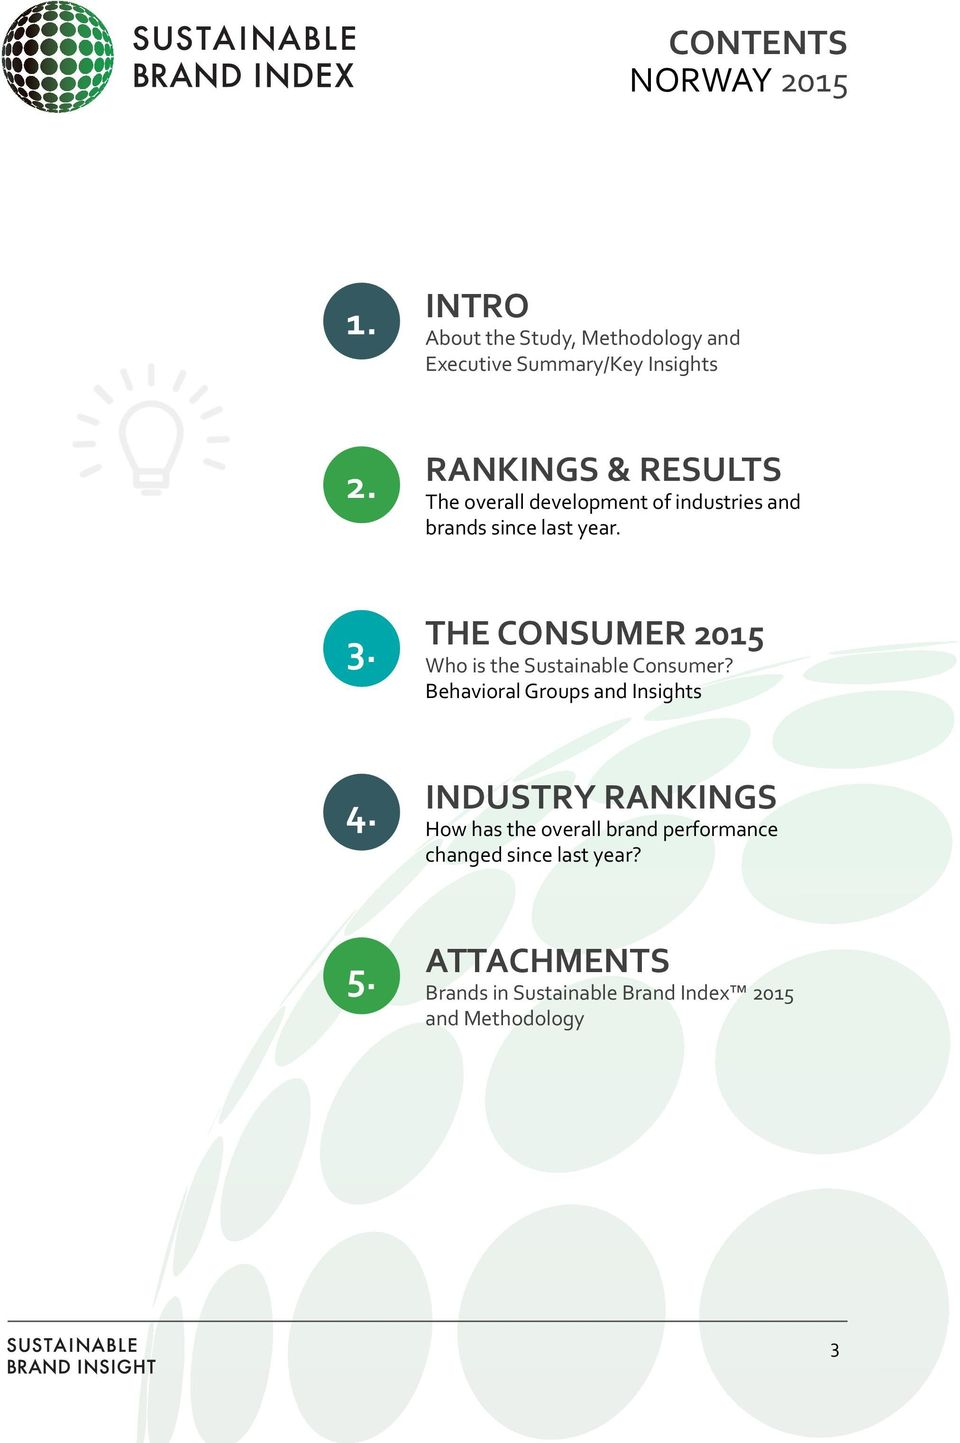 THE CONSUMER 2015 Who is the Sustainable Consumer? Behavioral Groups and Insights 4.